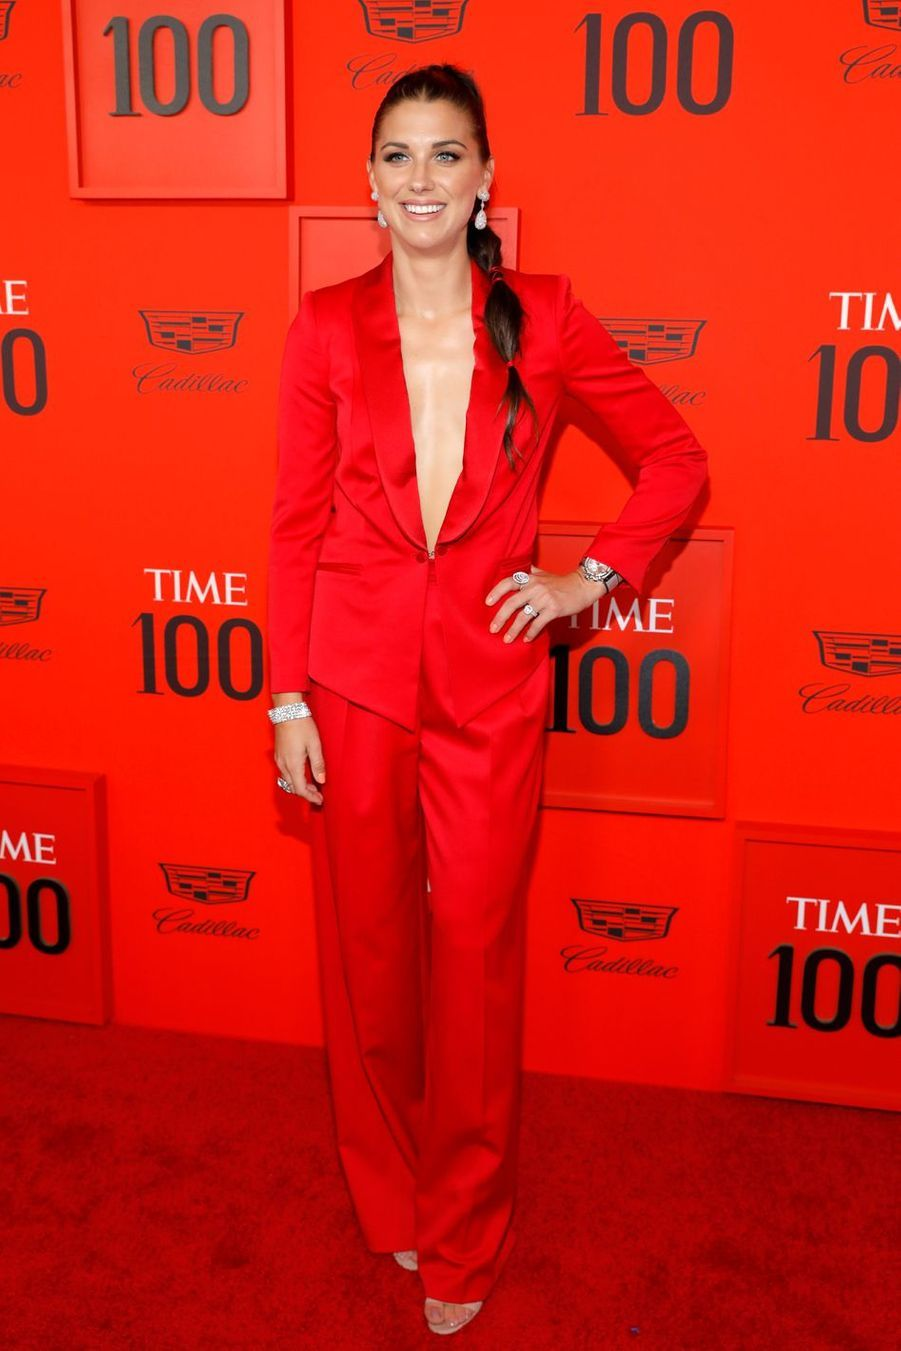 Alex Morgan au Time 100 Gala à New York le 23 avril 2019